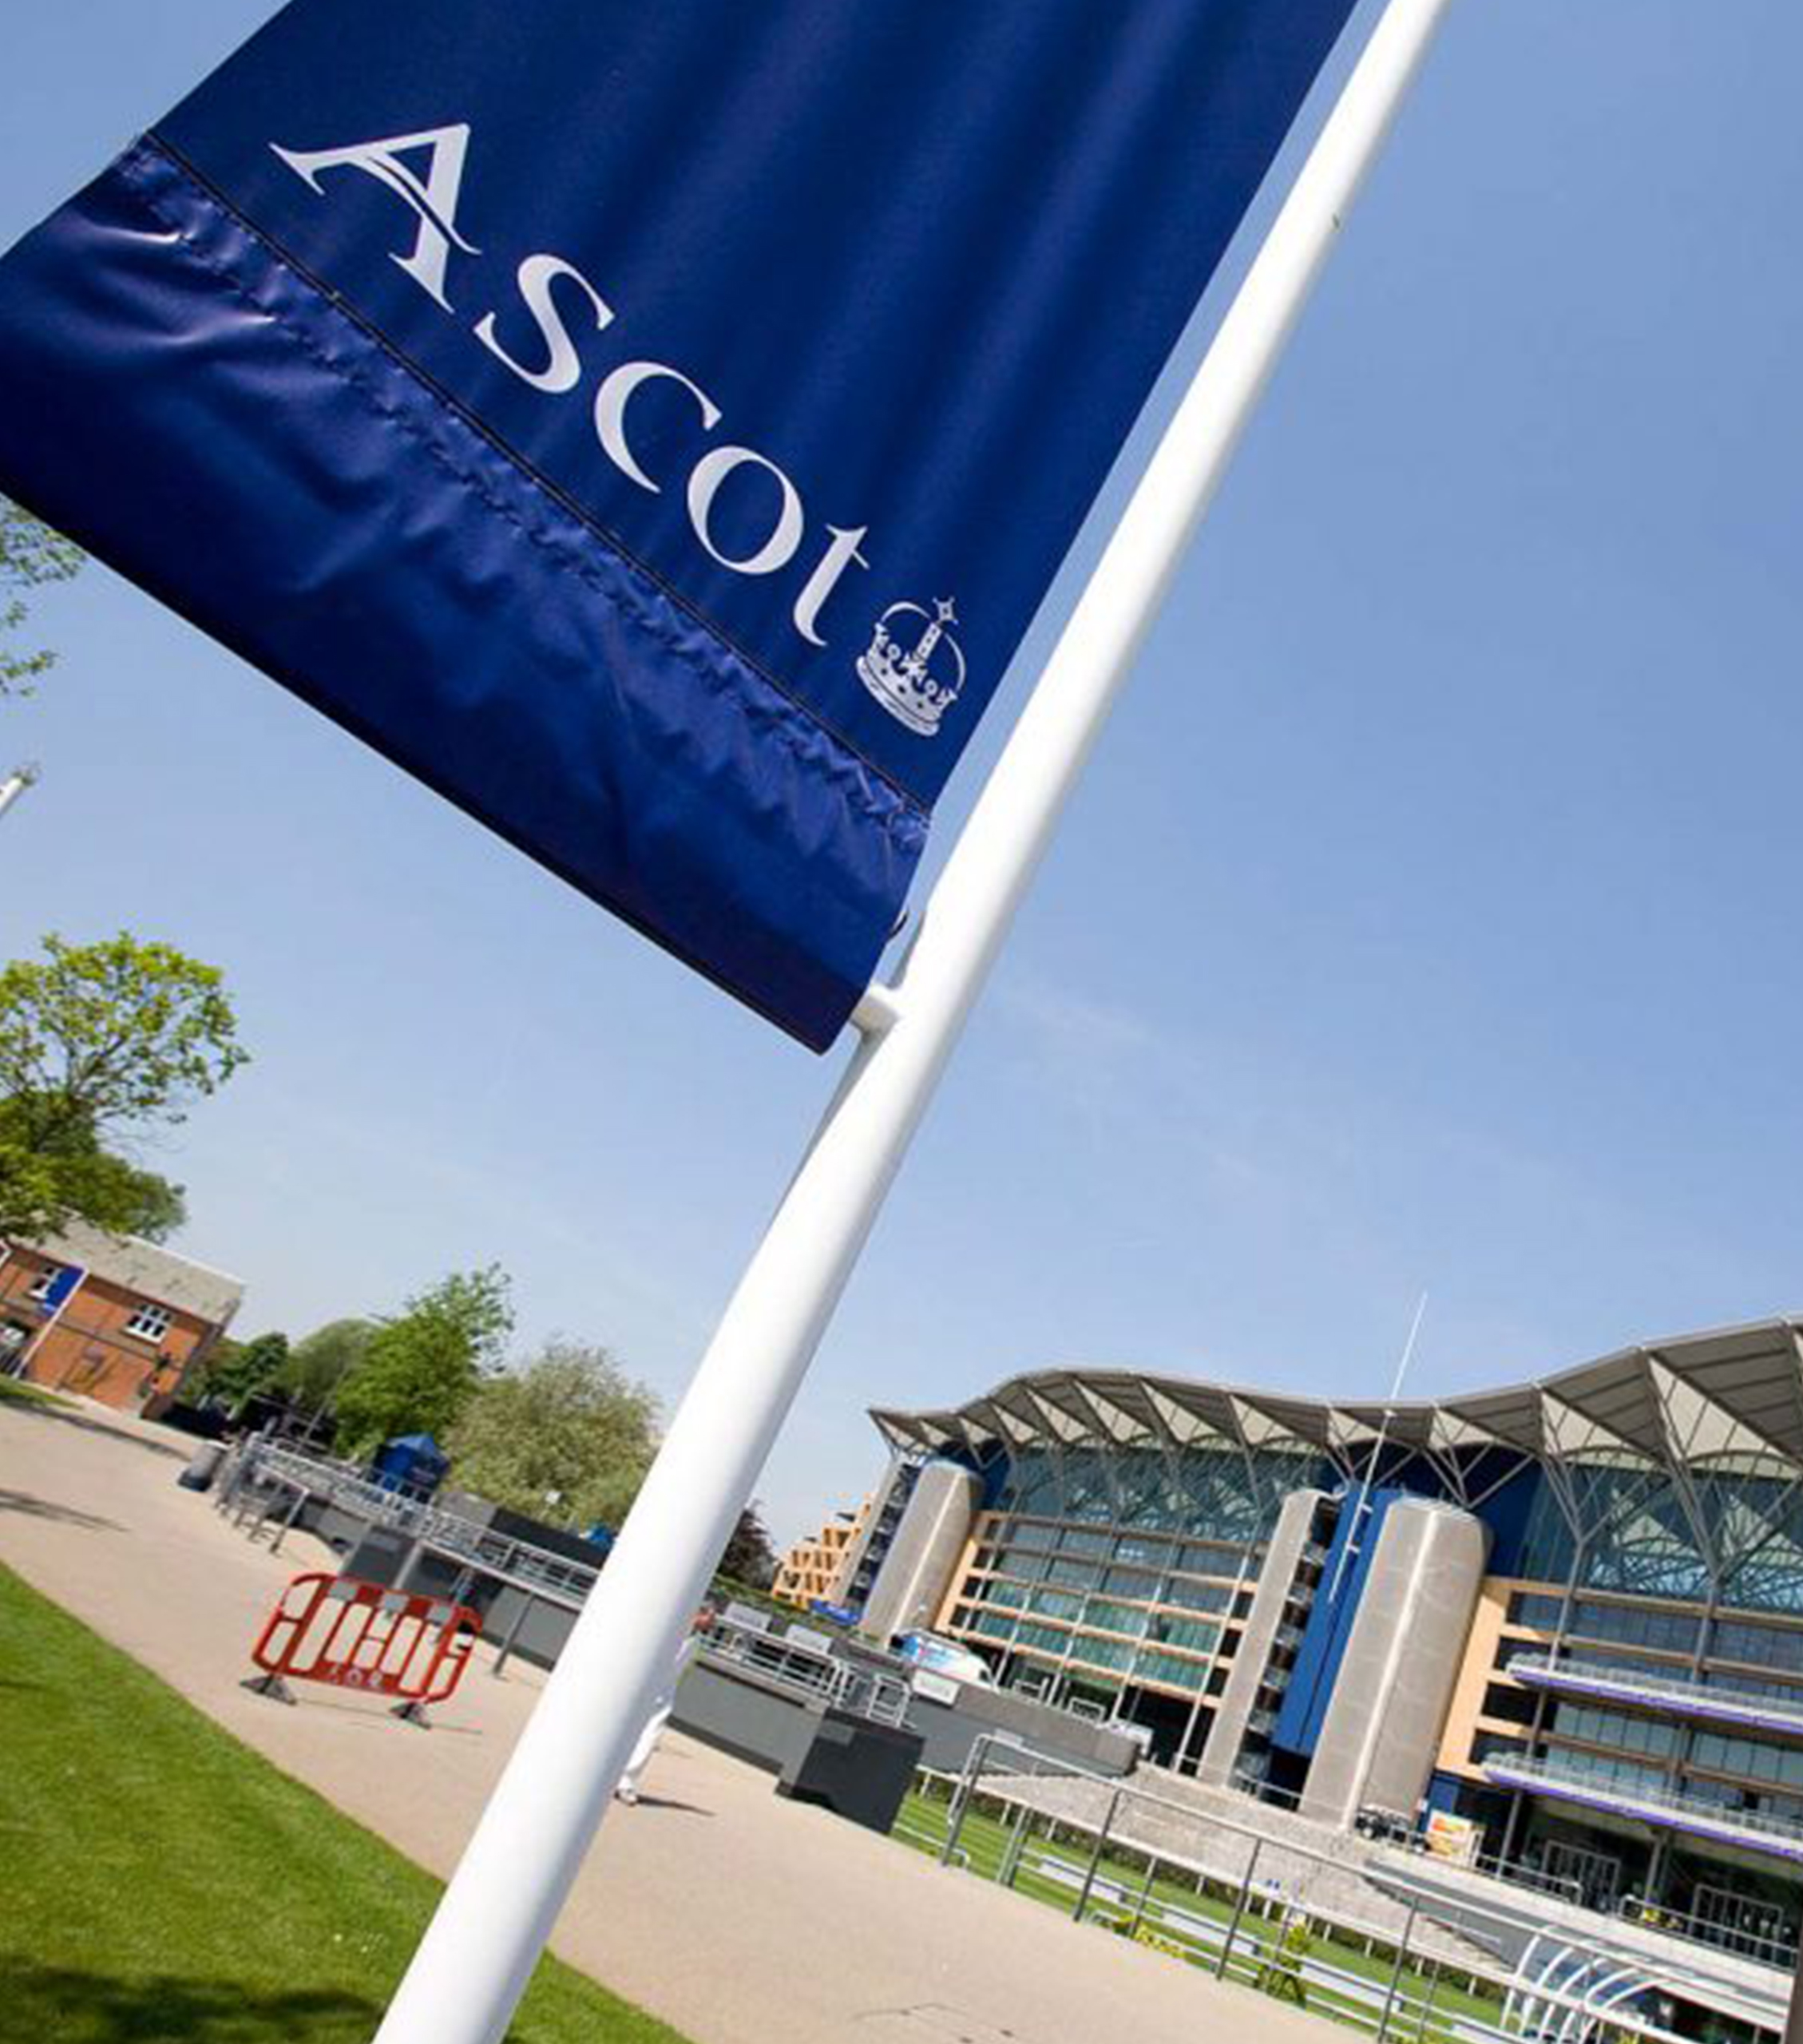 Hey Ascot and Sunninghill, it's not just the races that are fast, you will soon have one of the fastest broadband connections in the UK